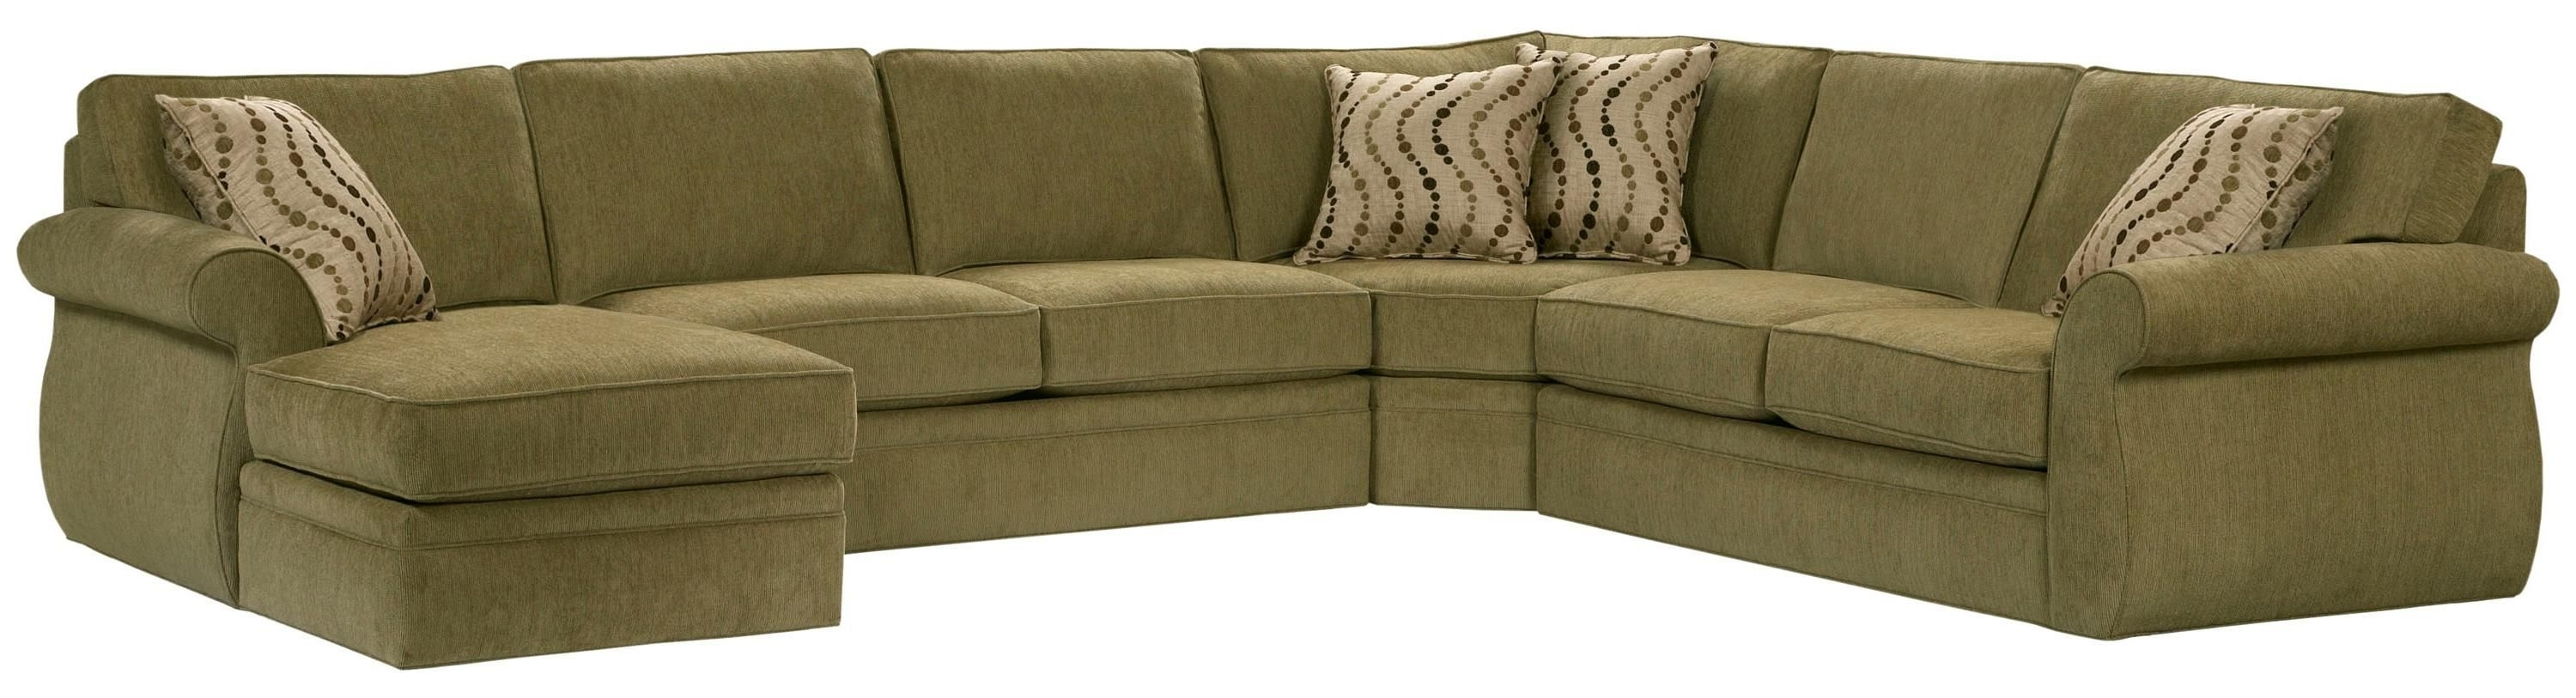 6170 Veronica Left Arm Facing Customizable Chaise Sectional Sofa For Sectional Sofas At Broyhill (Image 1 of 10)